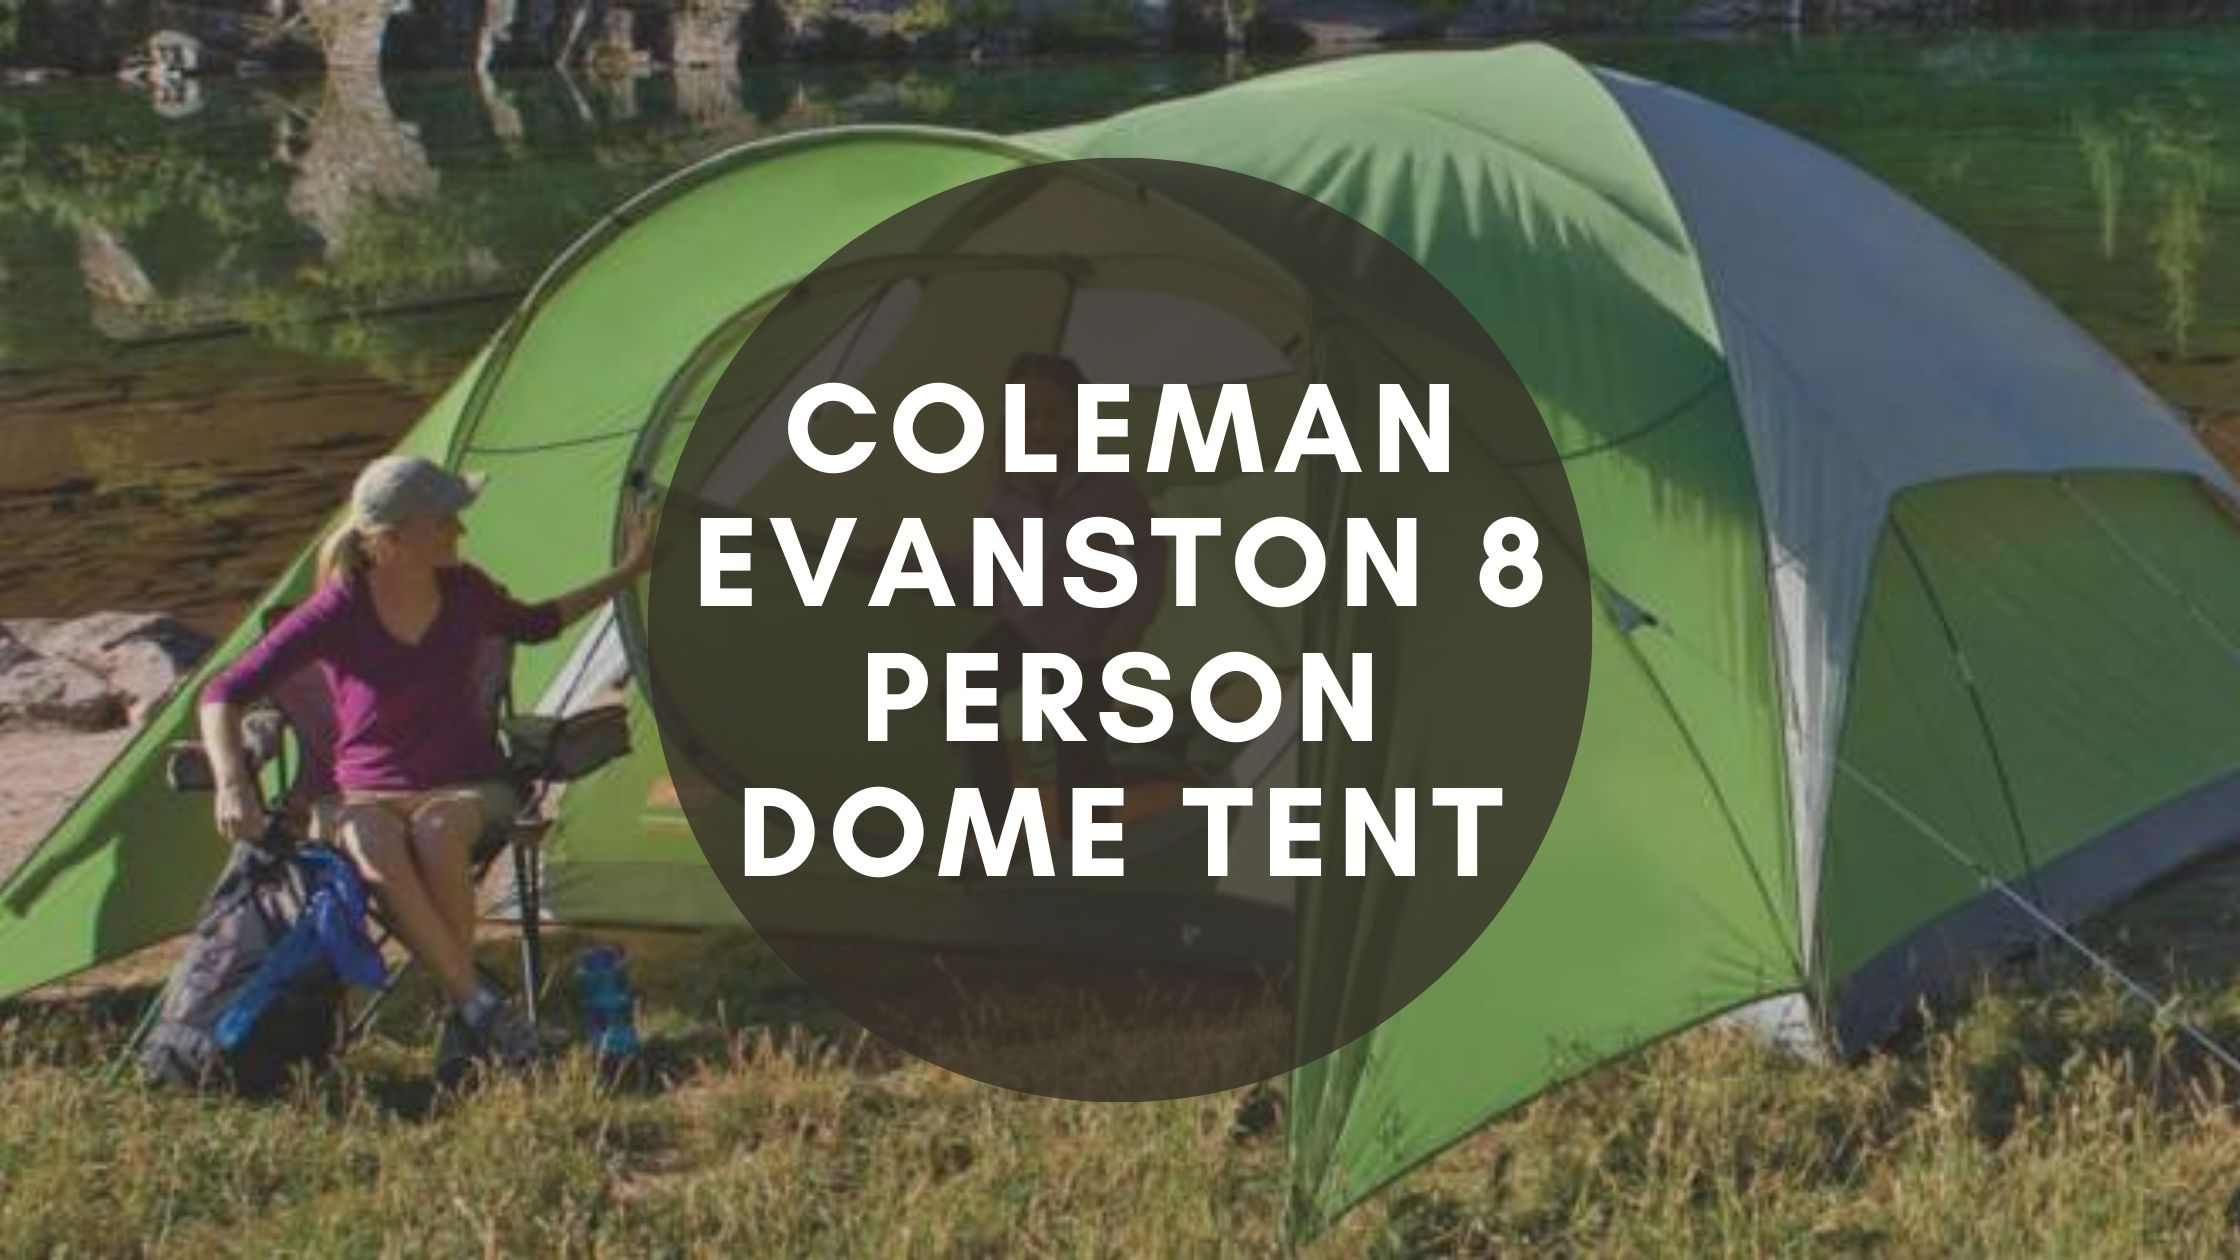 Coleman Evanston 8 Person Dome Tent Review